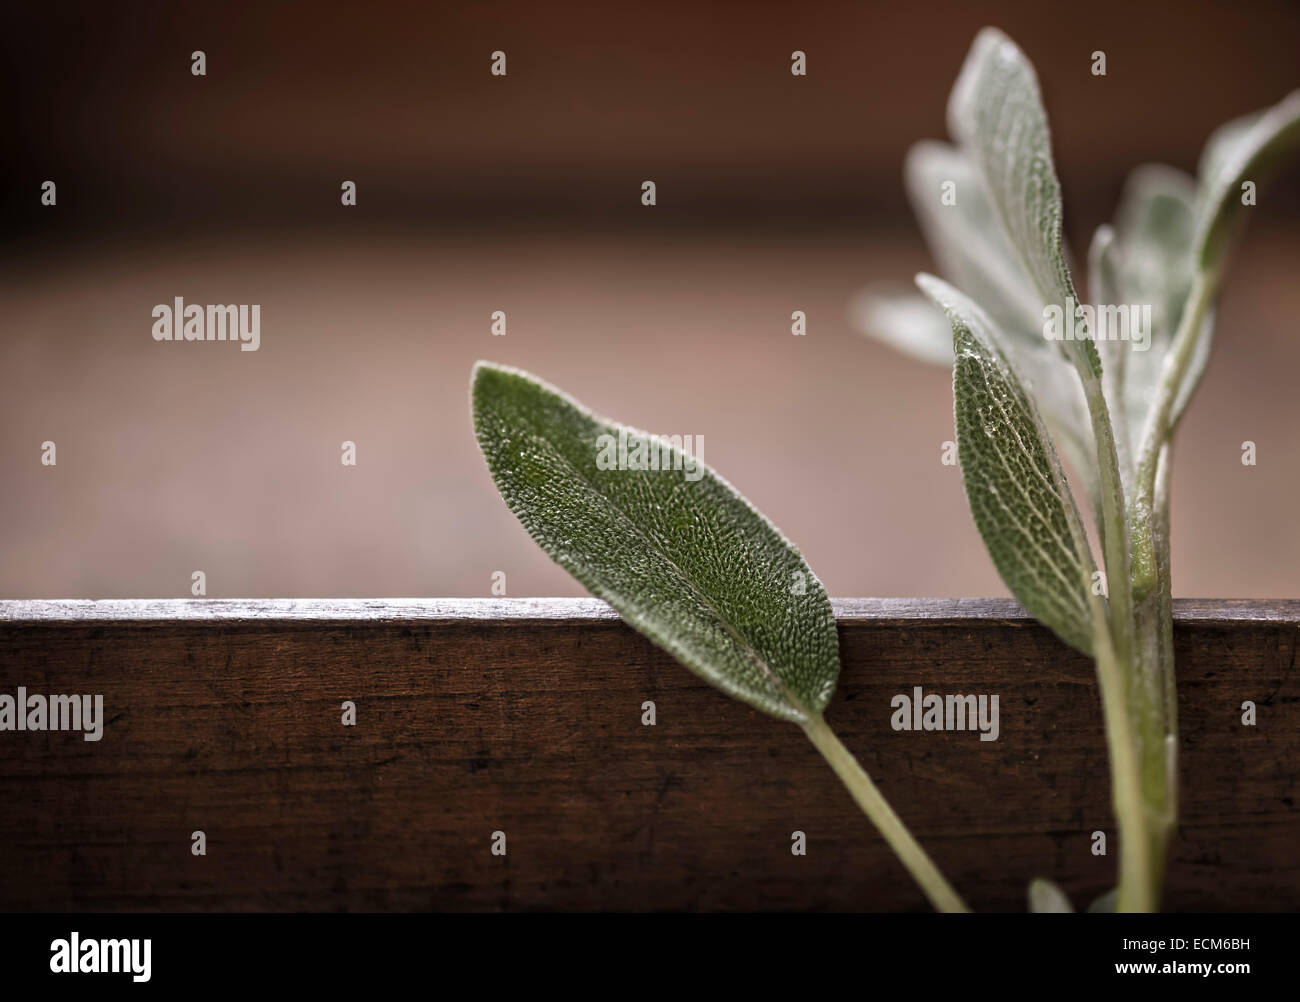 Sprig of fresh sage in a wooden tray. - Stock Image